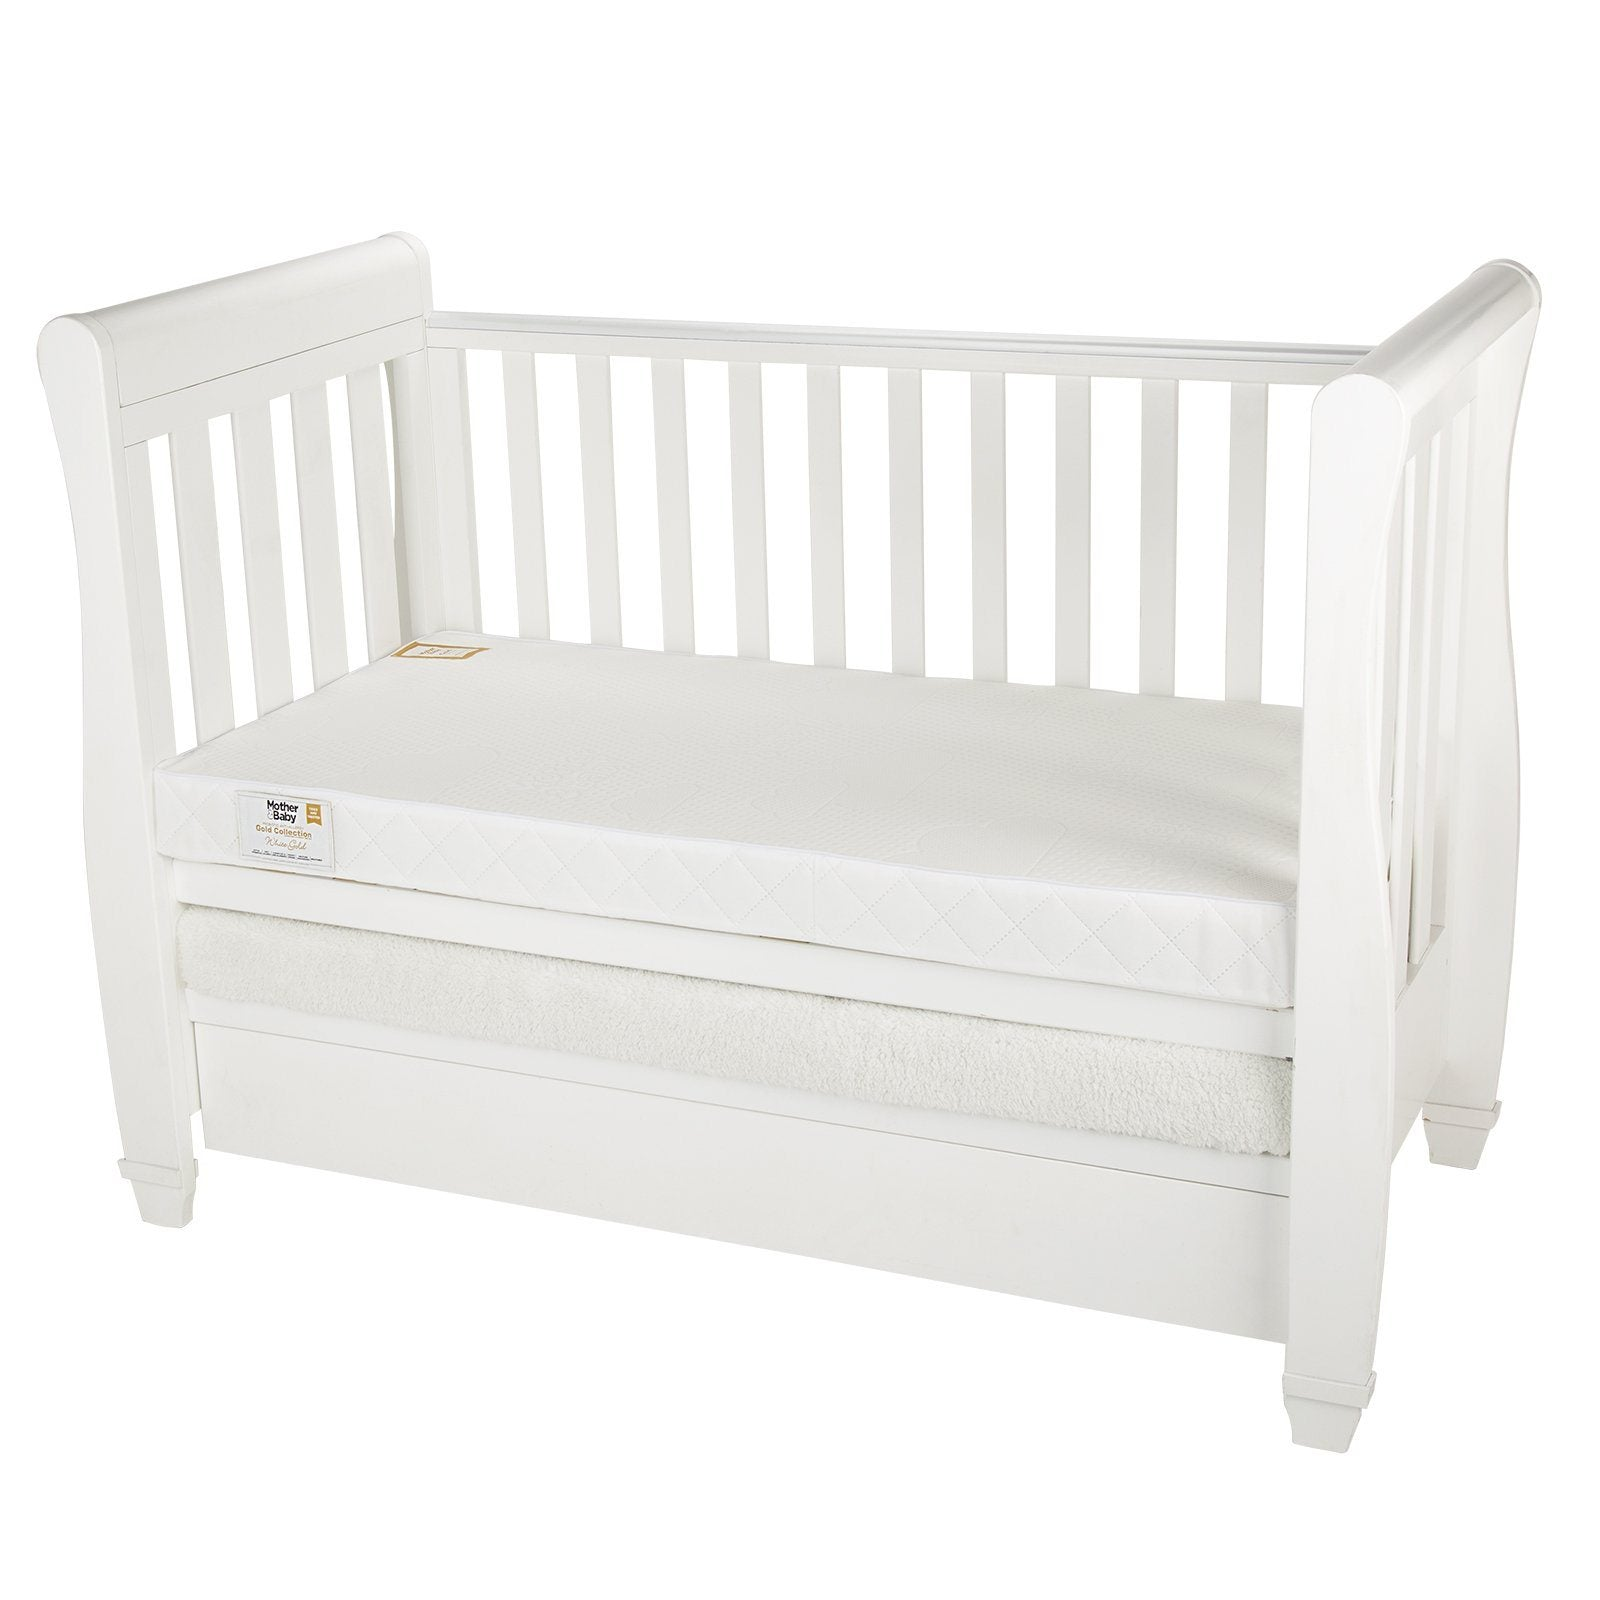 Mother&Baby White Gold Anti-Allergy Pocket Sprung Cot Mattress 120 x 60cm Mother & Baby